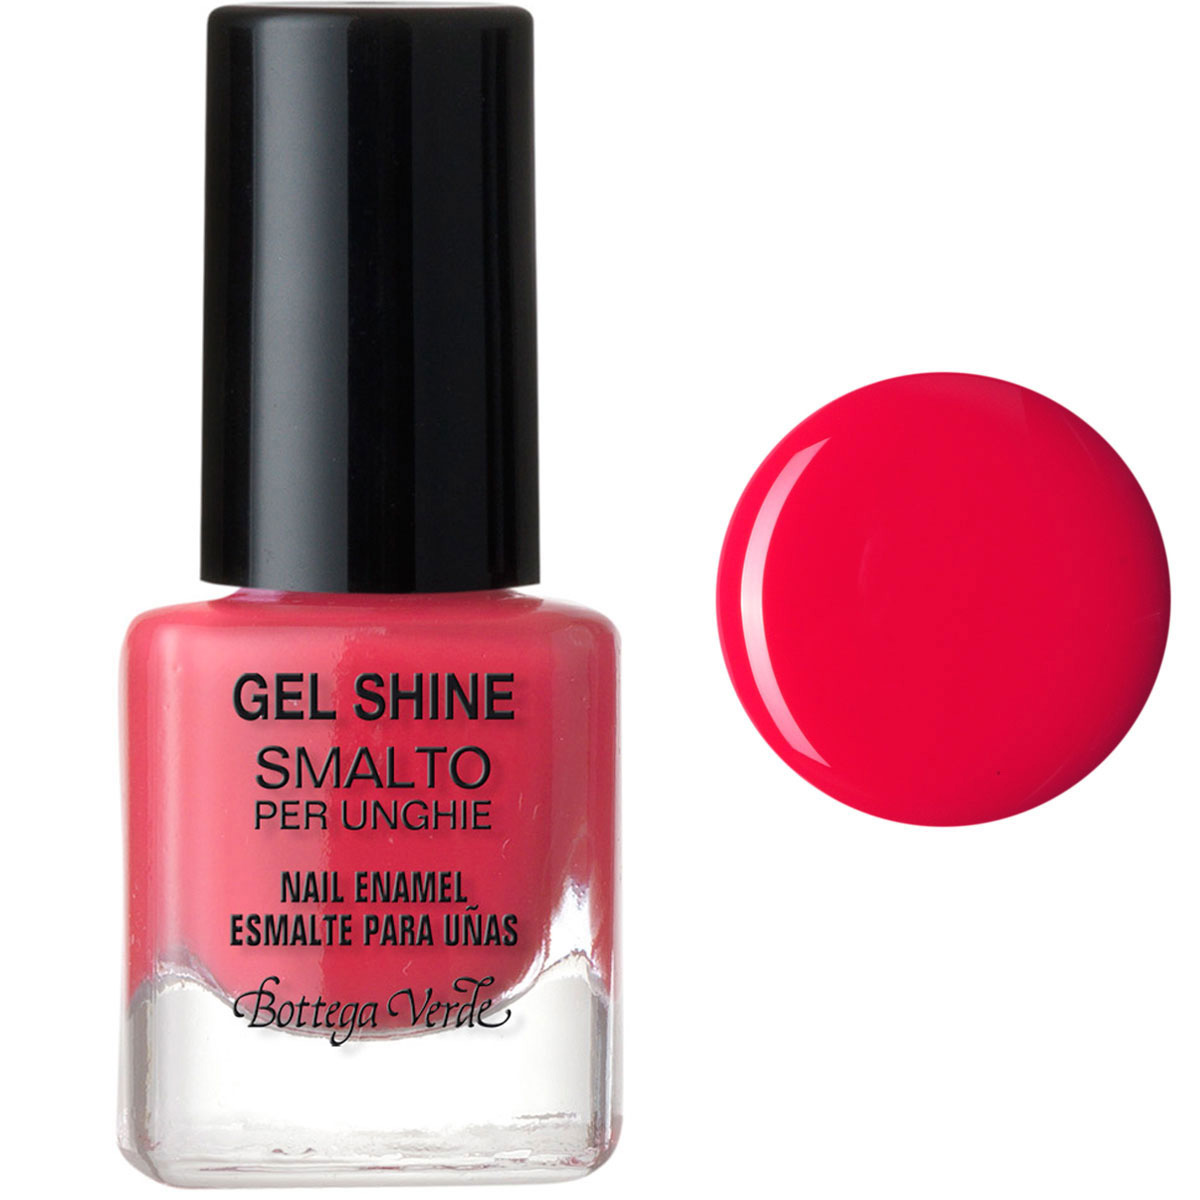 Lac de unghii - Gel Shine, 5 ML